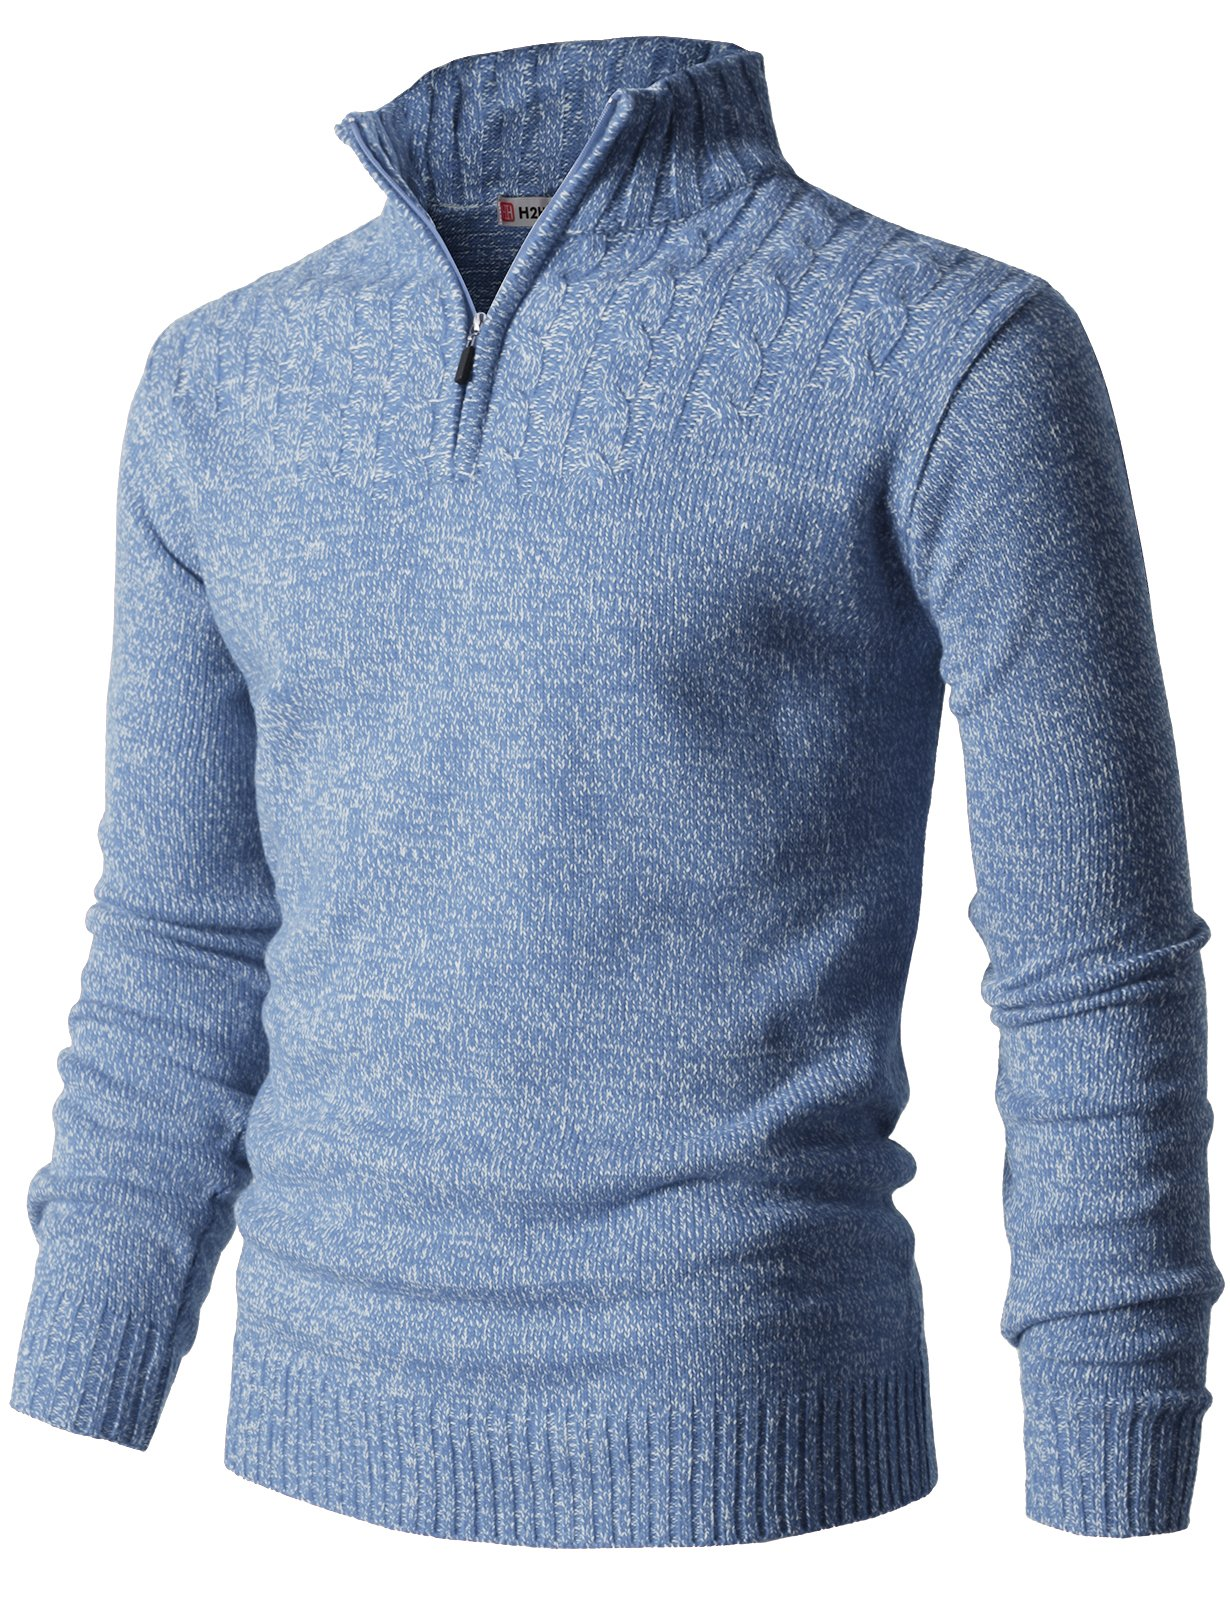 H2H Mens Casual Half Zip with Twisted Knitted Long Sleeve Pullover Sweater Sky US XL/Asia 2XL (CMOSWL027)